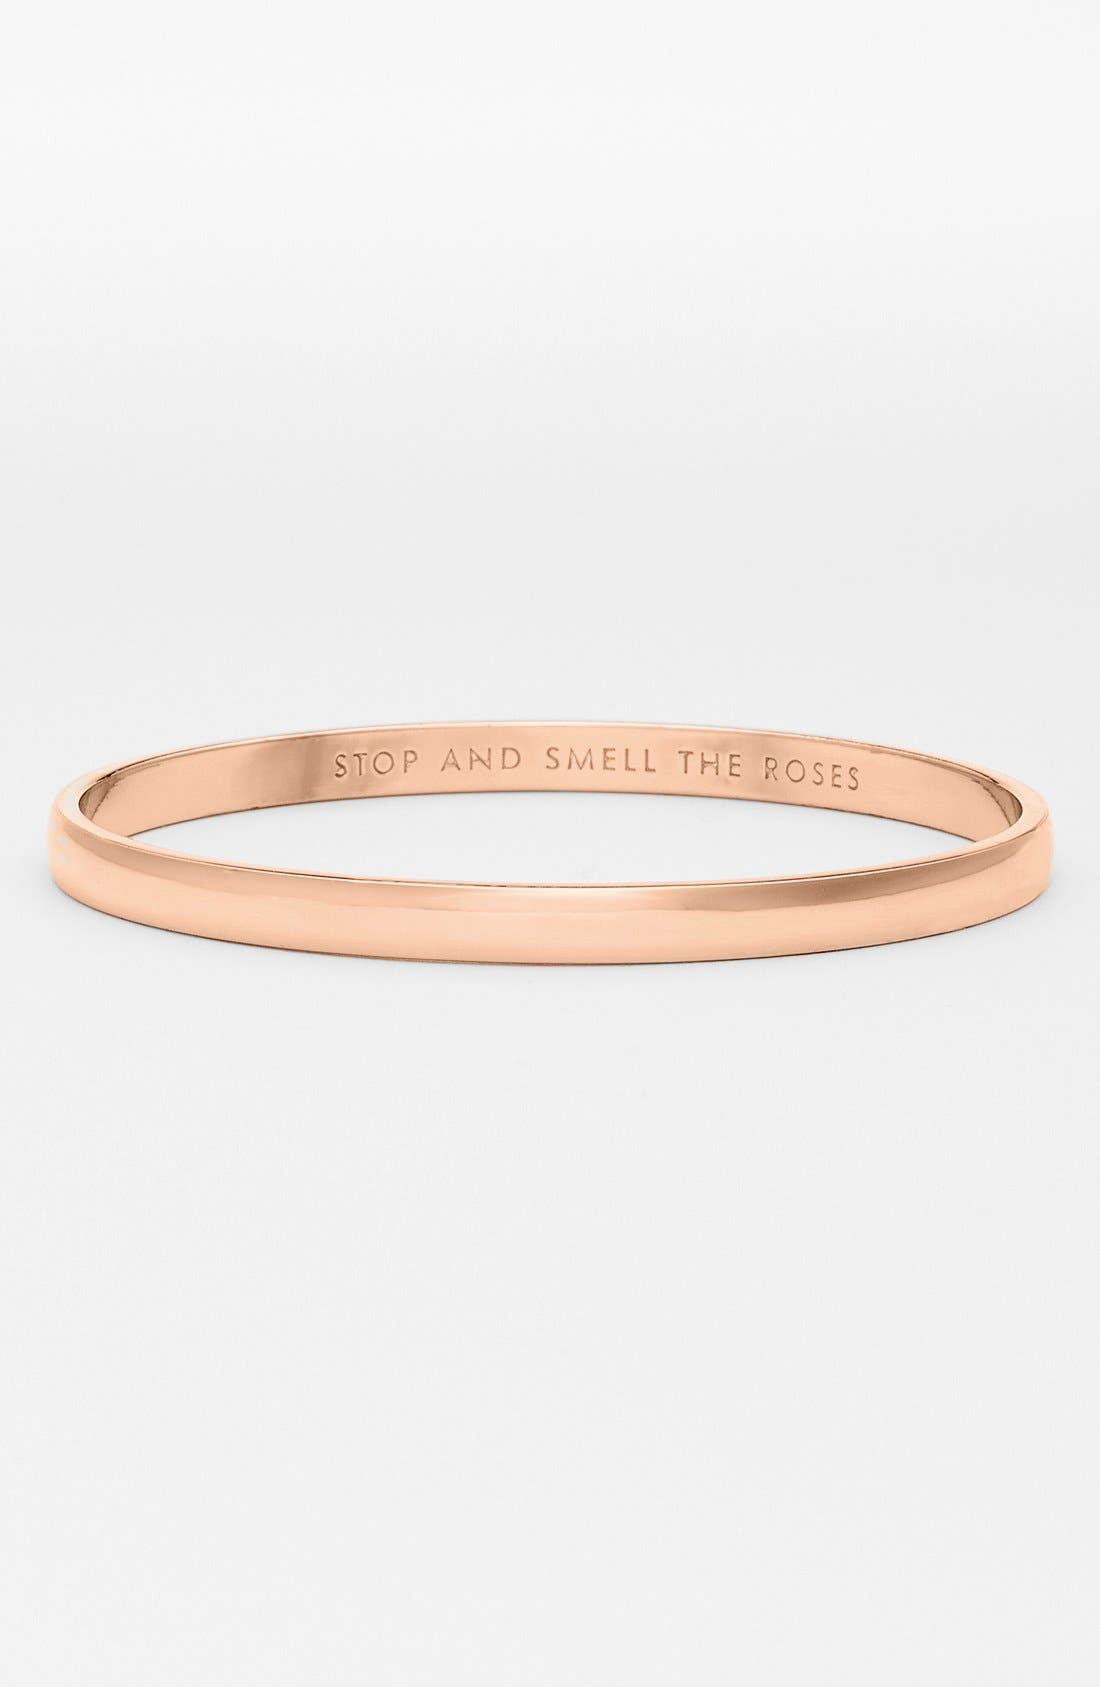 'idiom - stop and smell the roses' bangle,                             Main thumbnail 1, color,                             ROSE GOLD